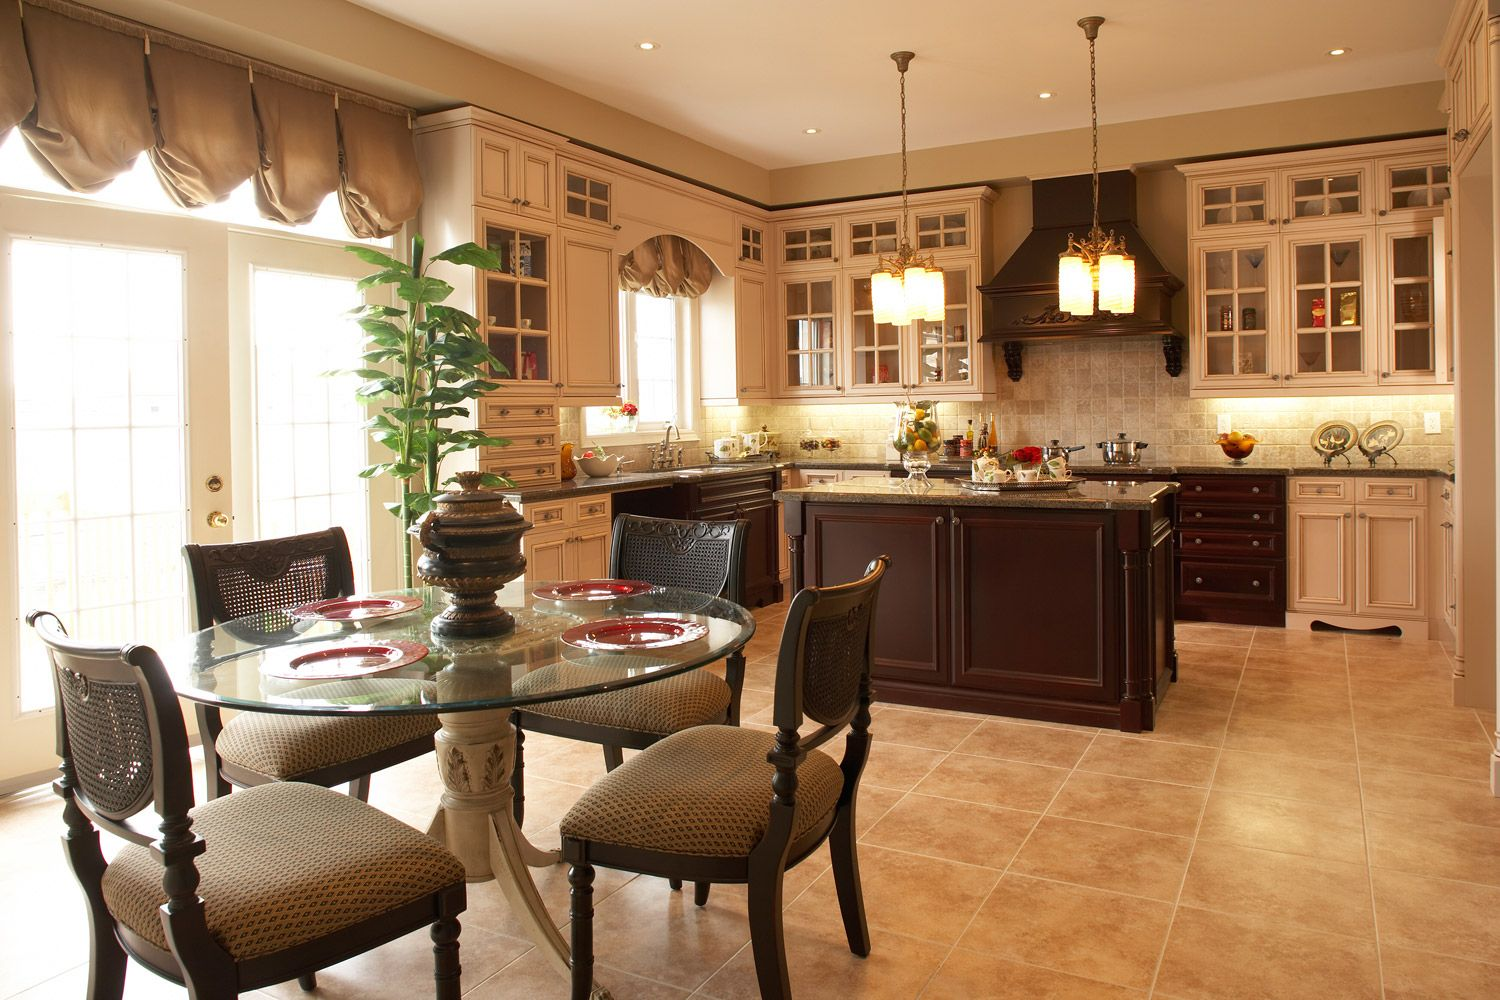 GL Homes photo gallery of models Model Home is full of